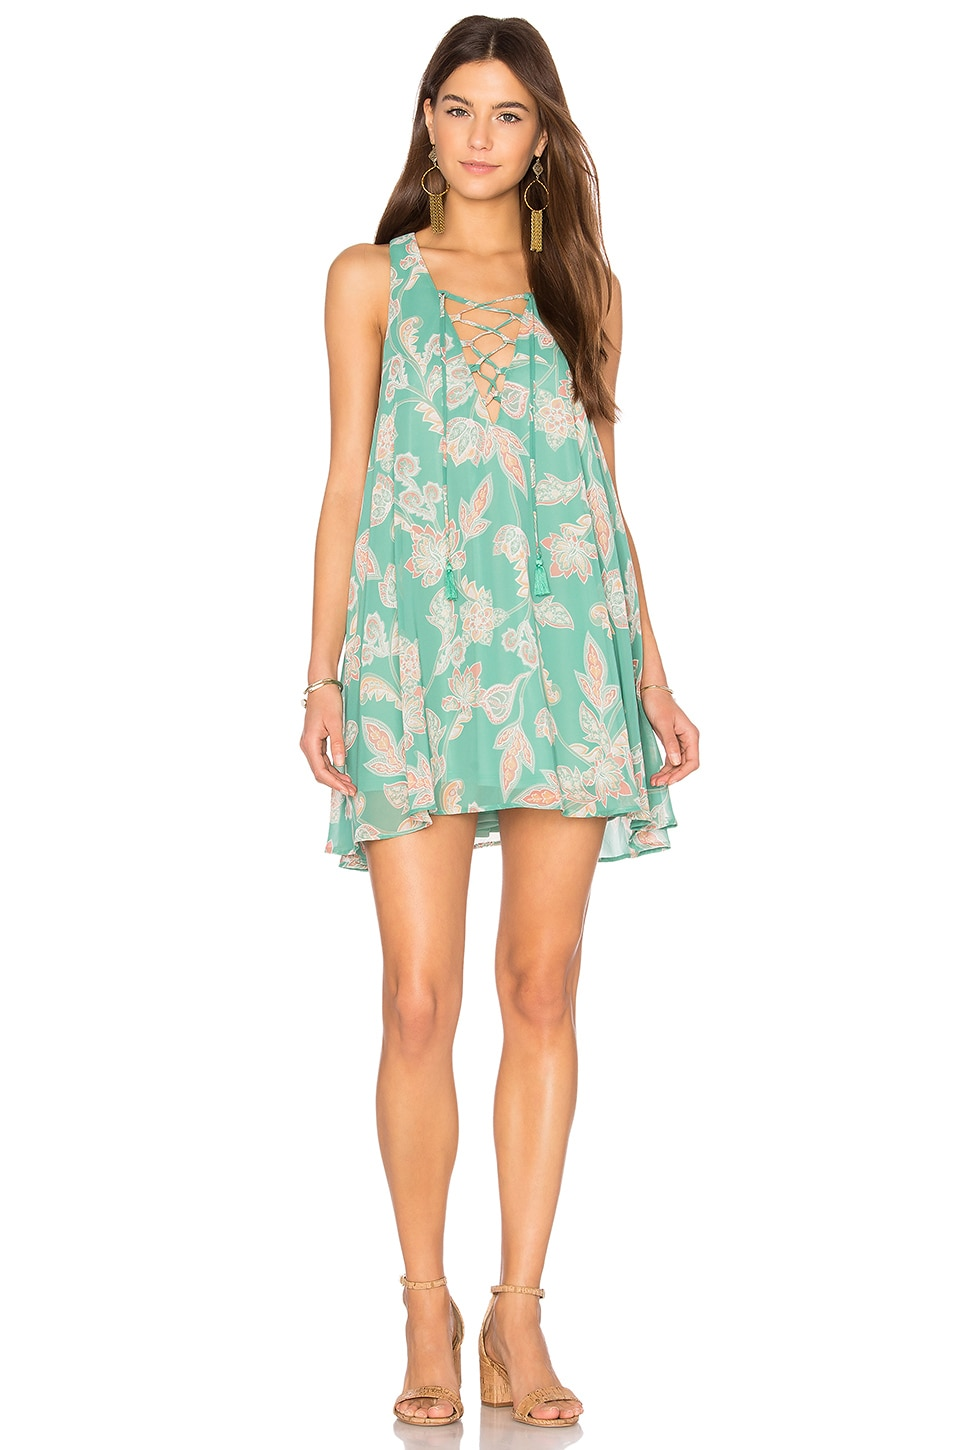 Rancho Mirage Lace Up Dress by Show Me Your Mumu